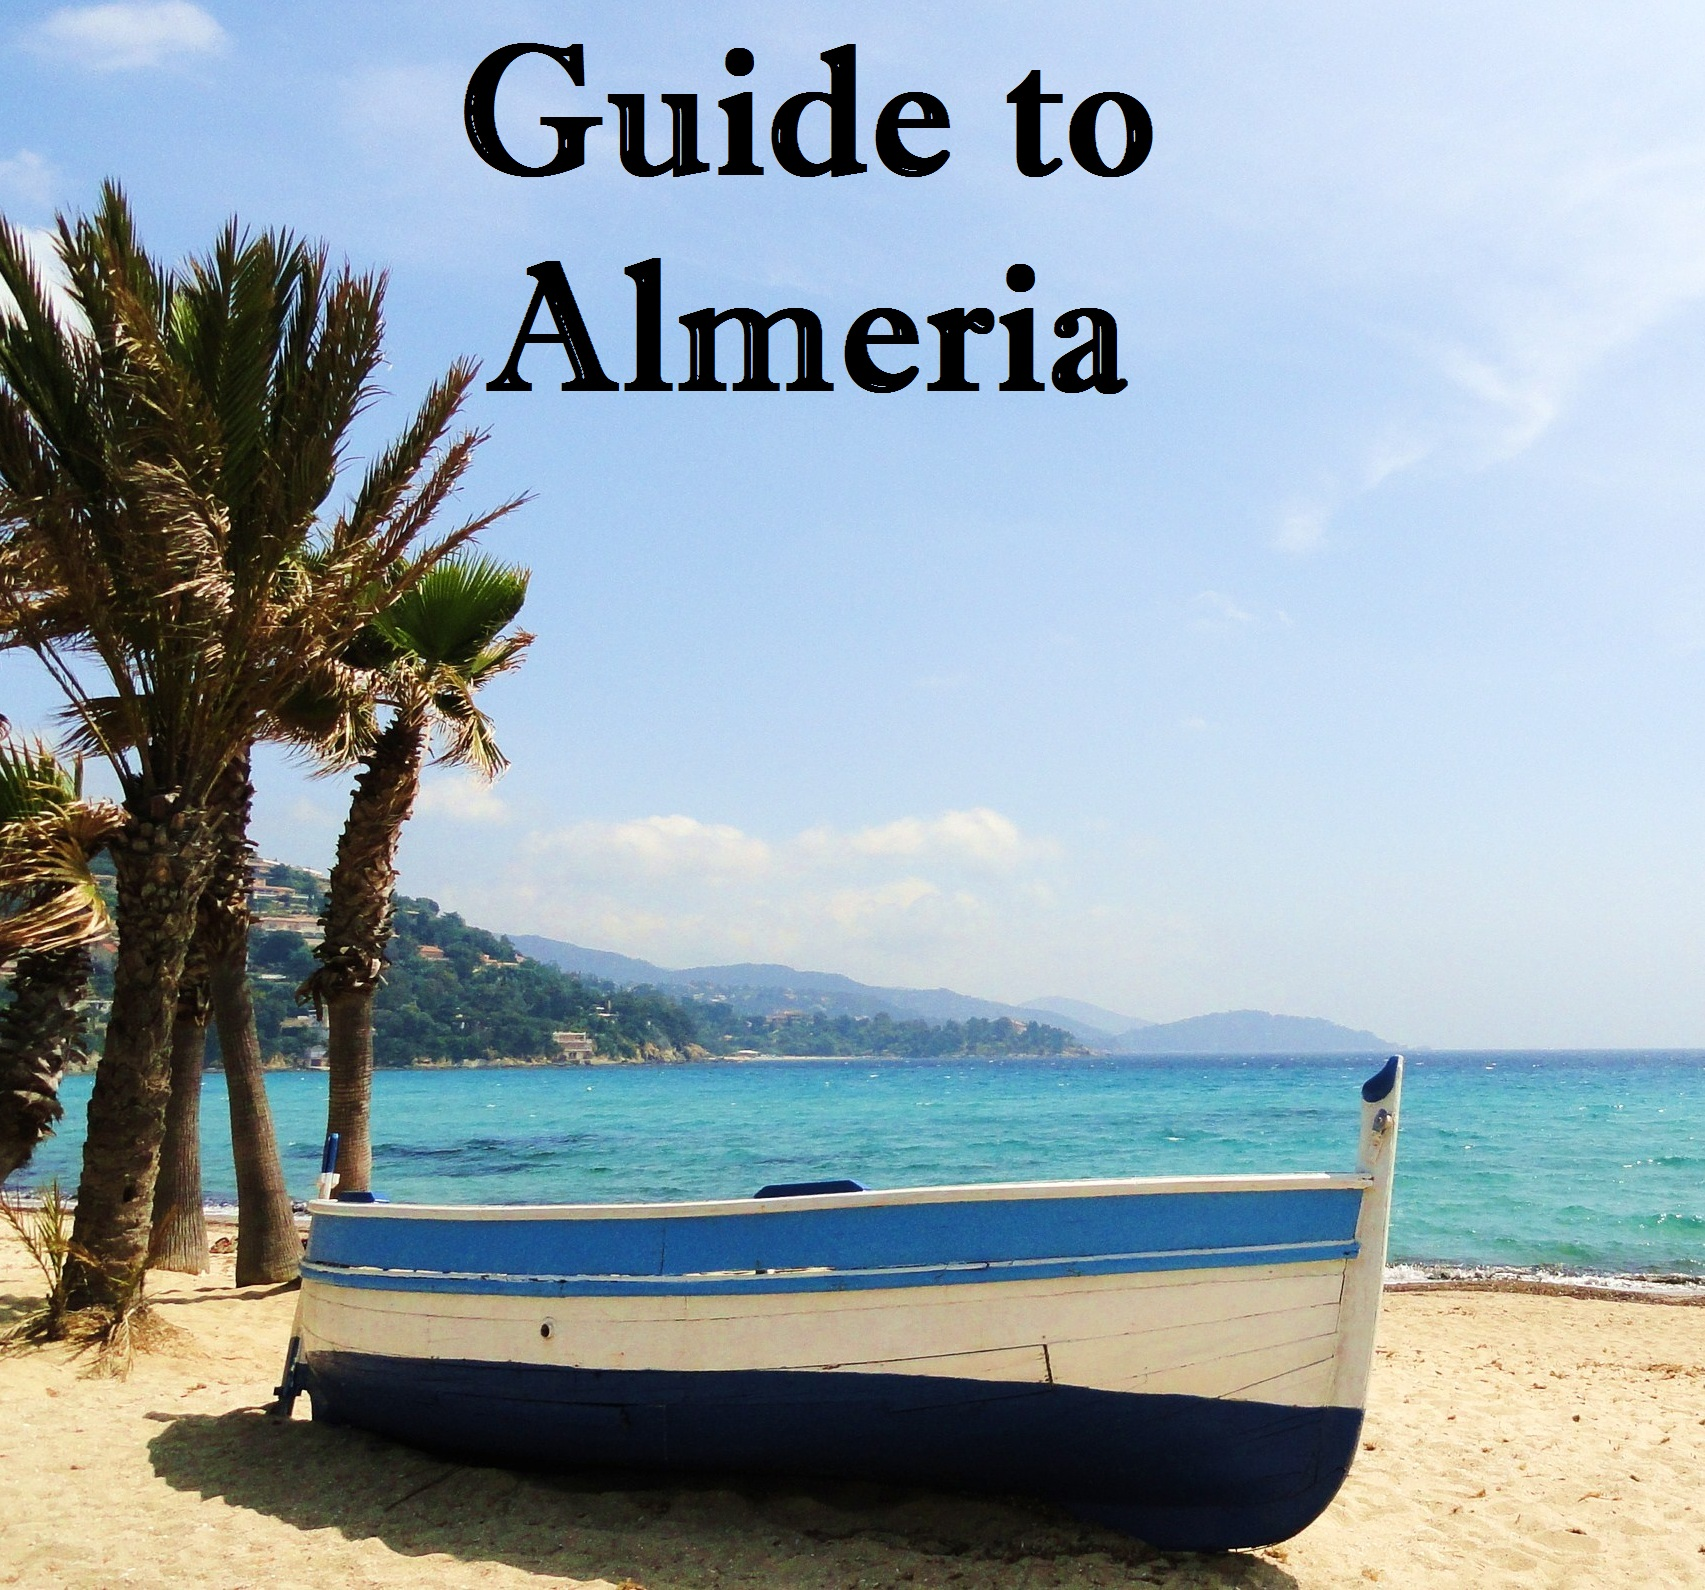 Guide to Almeria